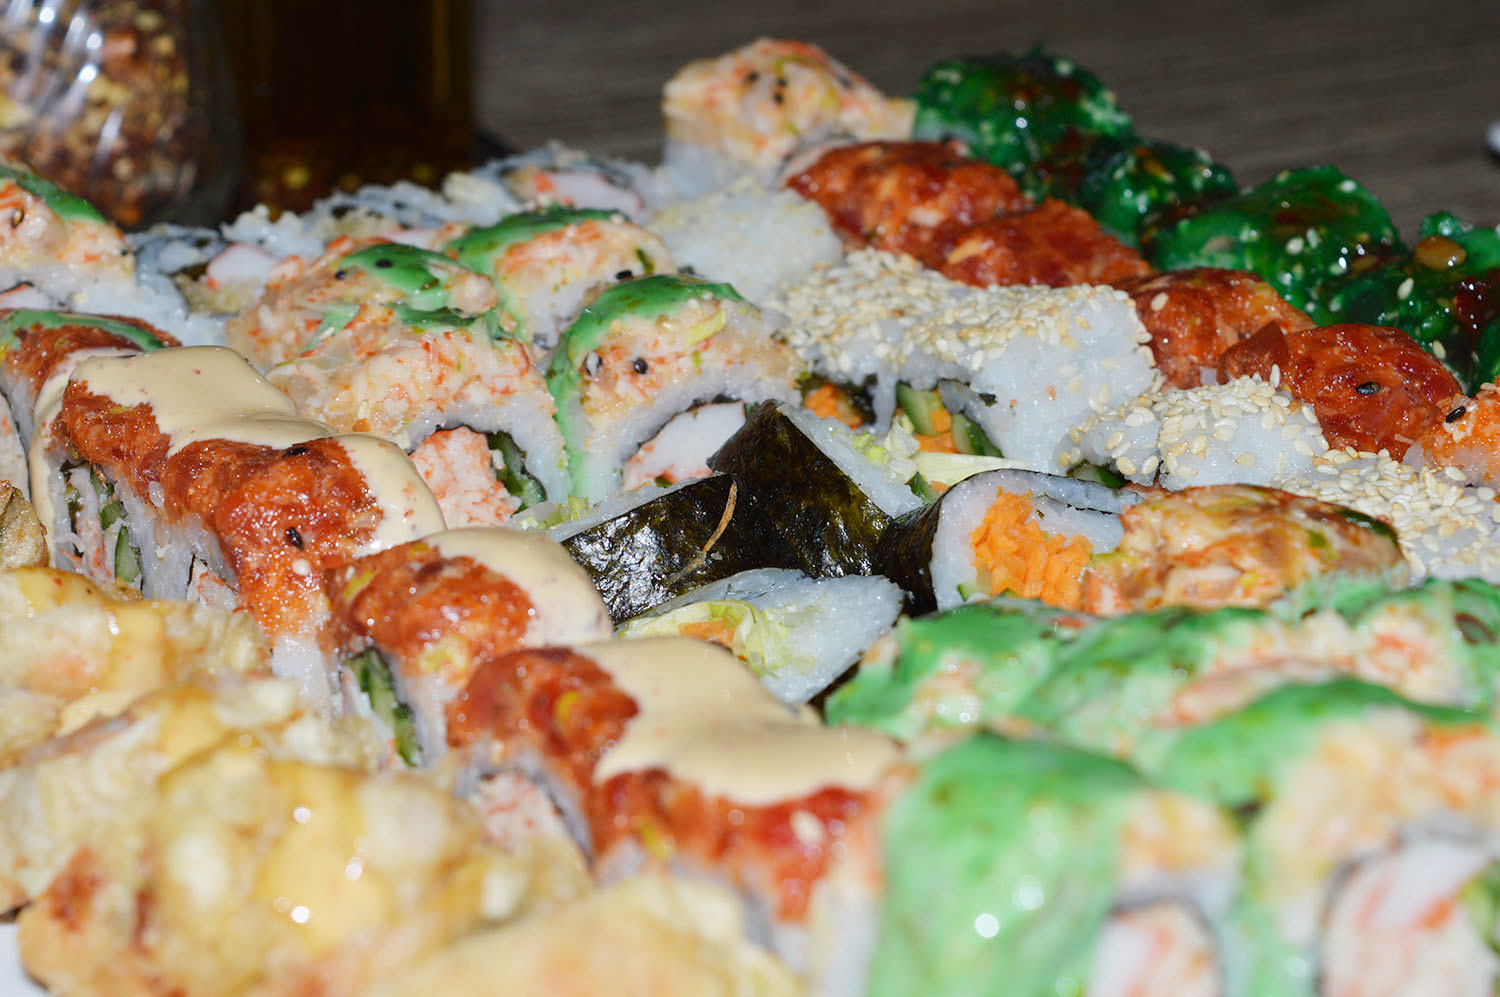 All You Can Eat Sushi @ Trattoria - Photo Credit: thespotist.com